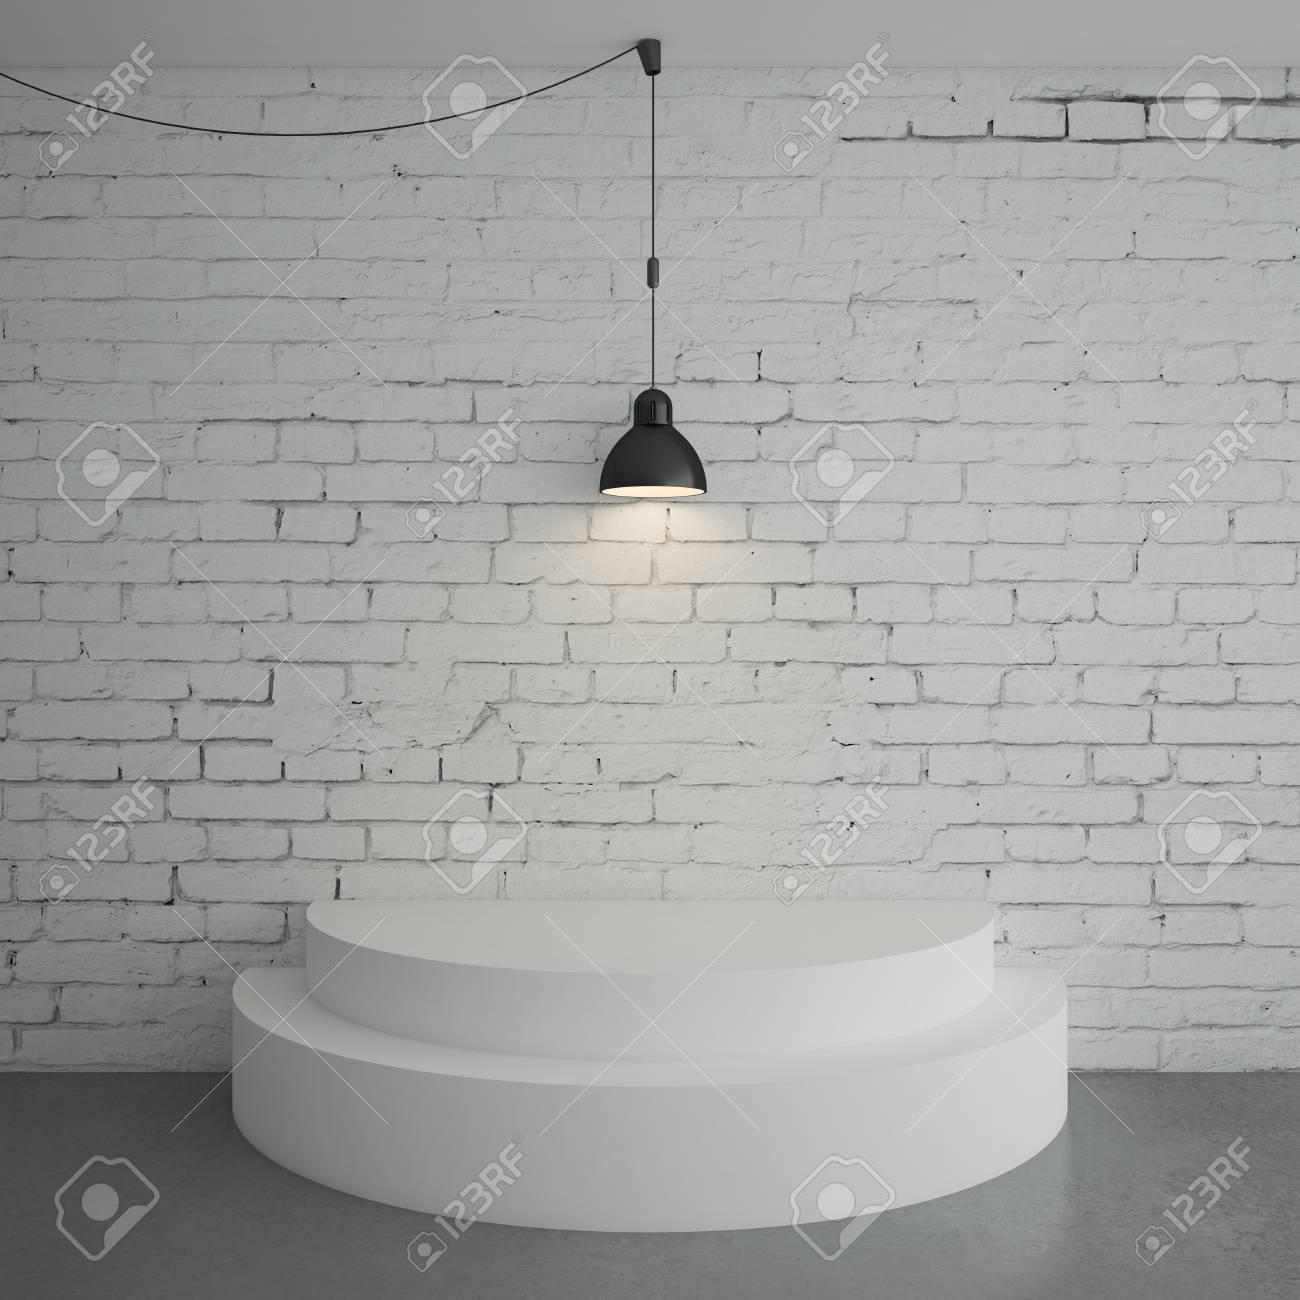 white brick room with podium Stock Photo - 18187717